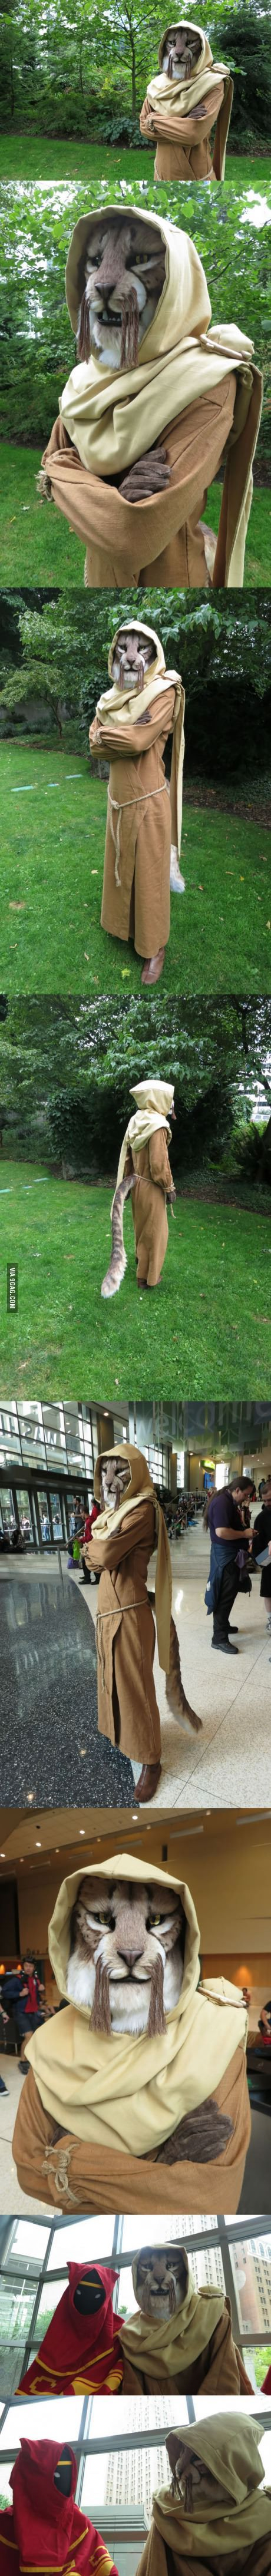 (*** http://BubbleCraze.org - Best-In-Class new Android/iPhone Game ***)  Skyrim Khajiit cosplay - M'aiq the Liar